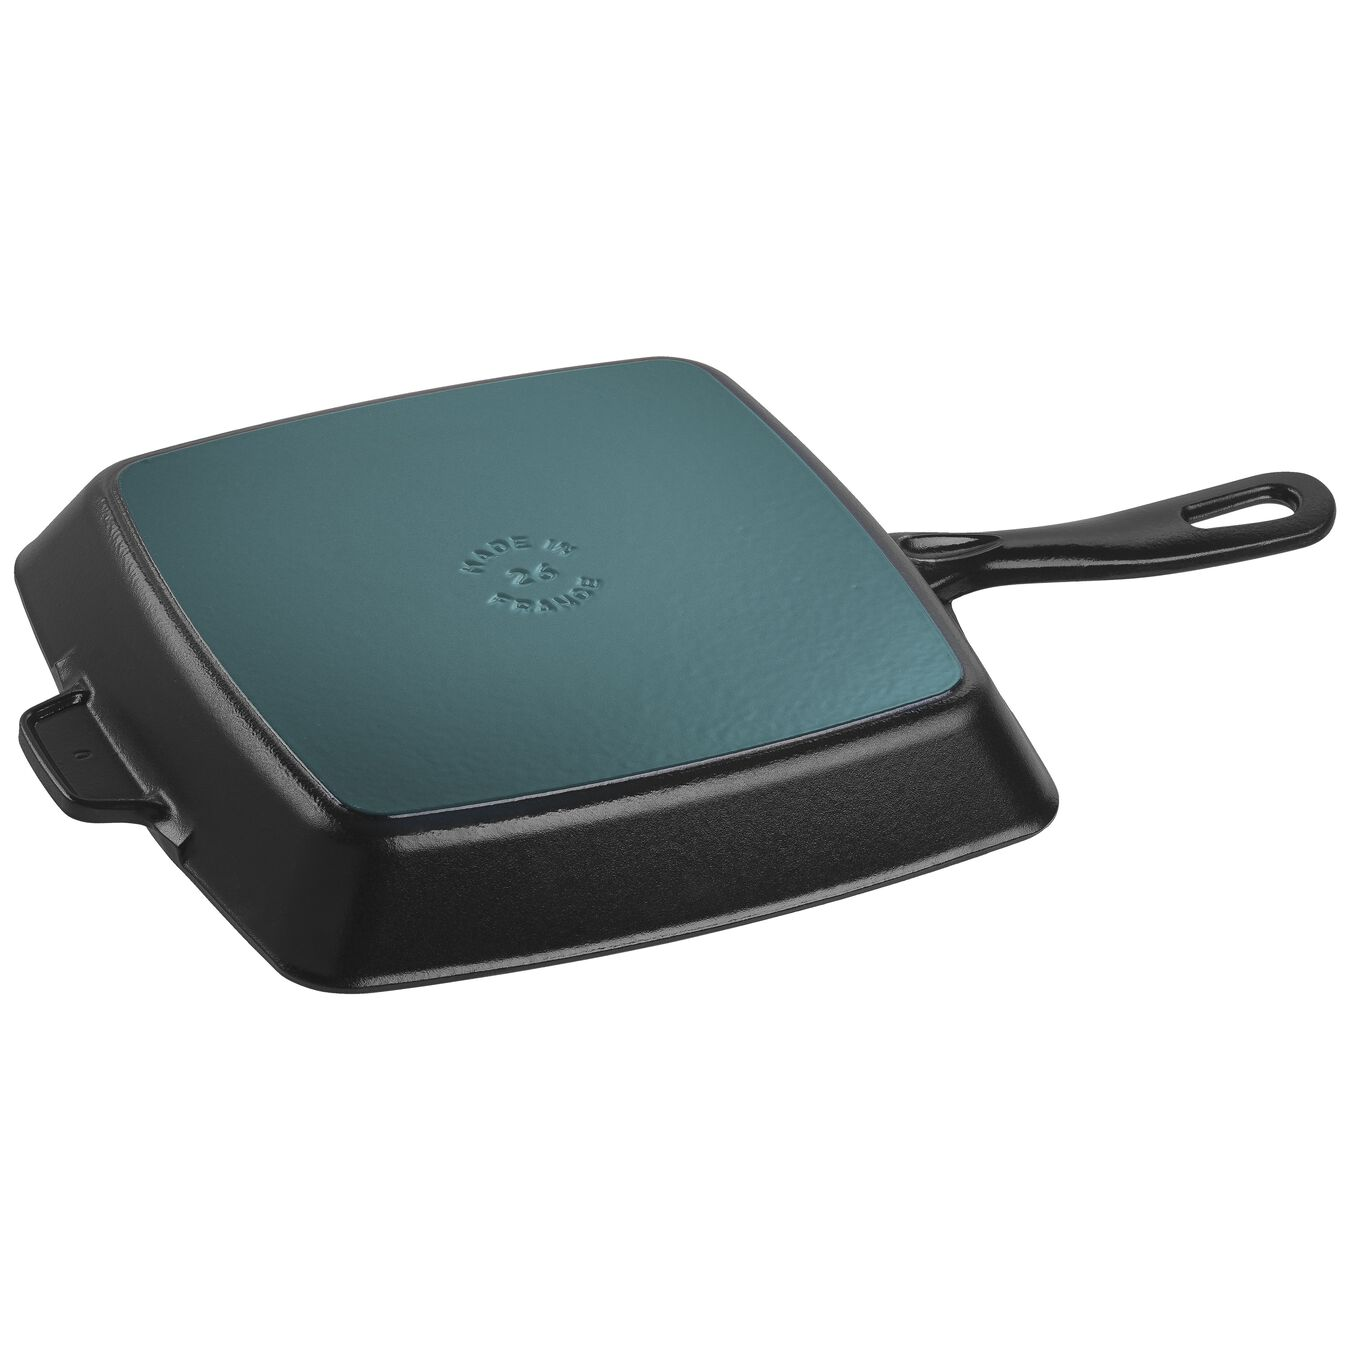 26 cm Cast iron square American grill, Black,,large 2